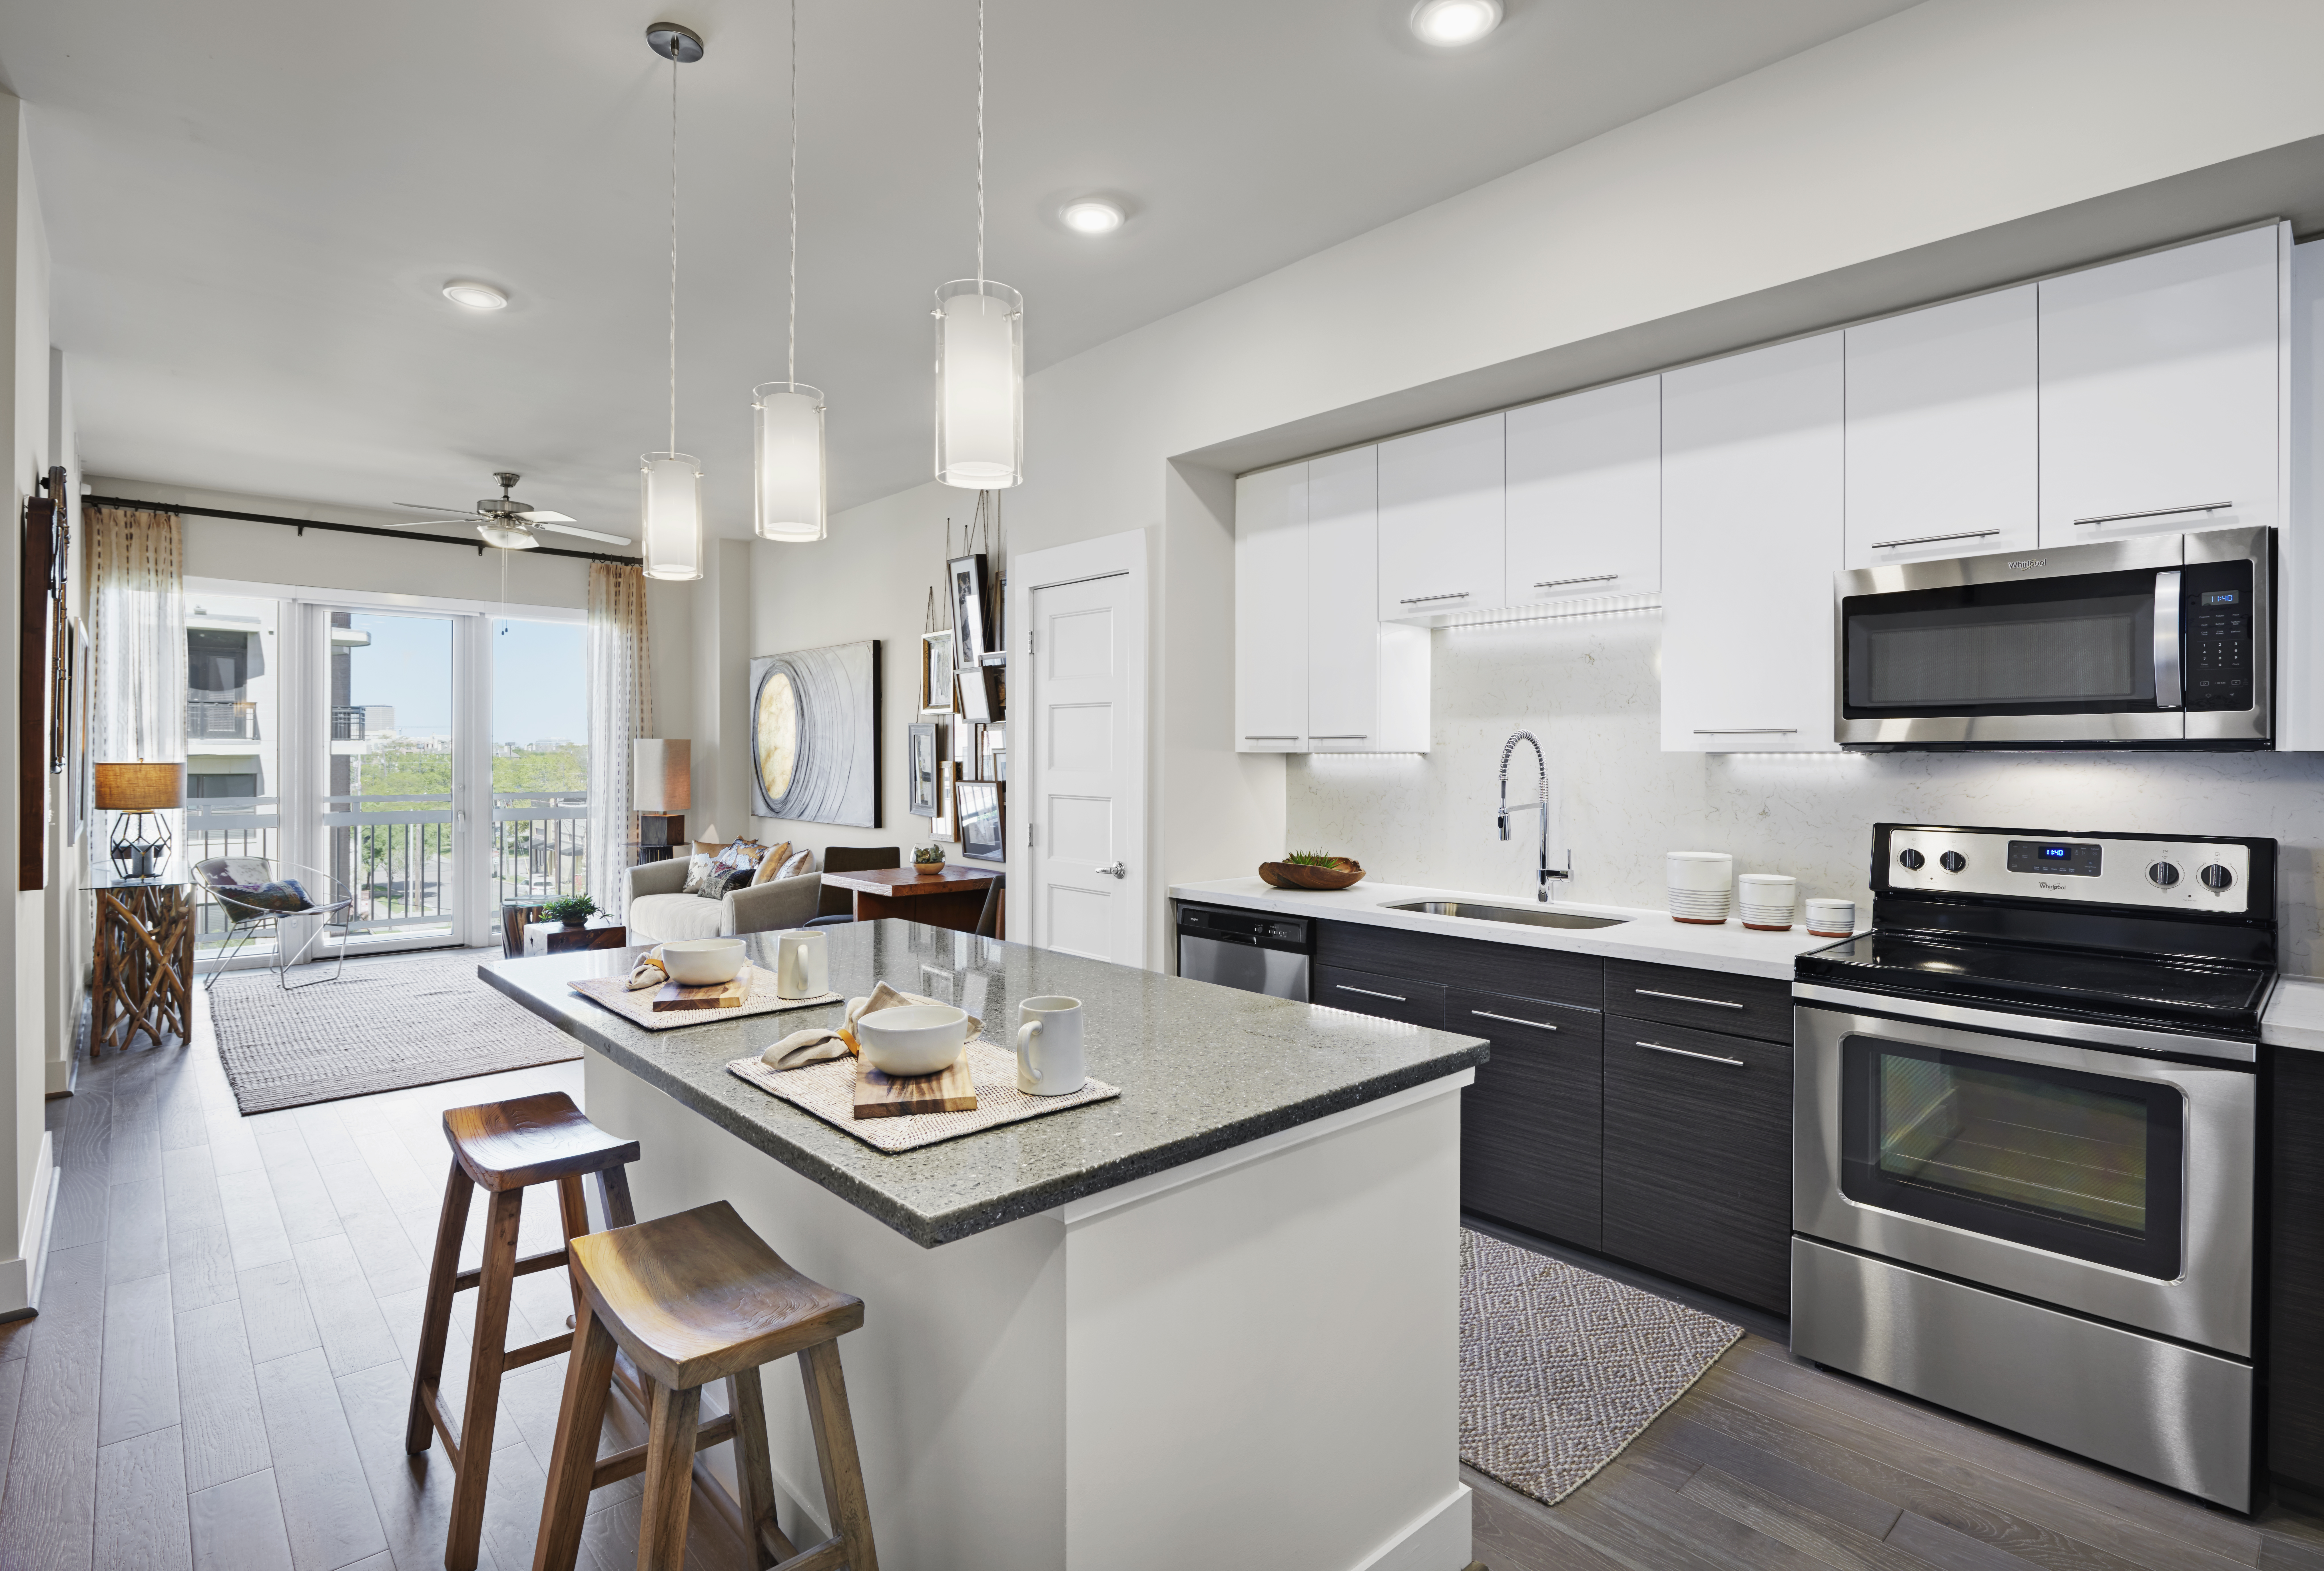 Gourmet Kitchen with Glitter Quartz Counters and Stainless Steel Appliances at Camden McGowen Station Apartments in Midtown Houston, TX